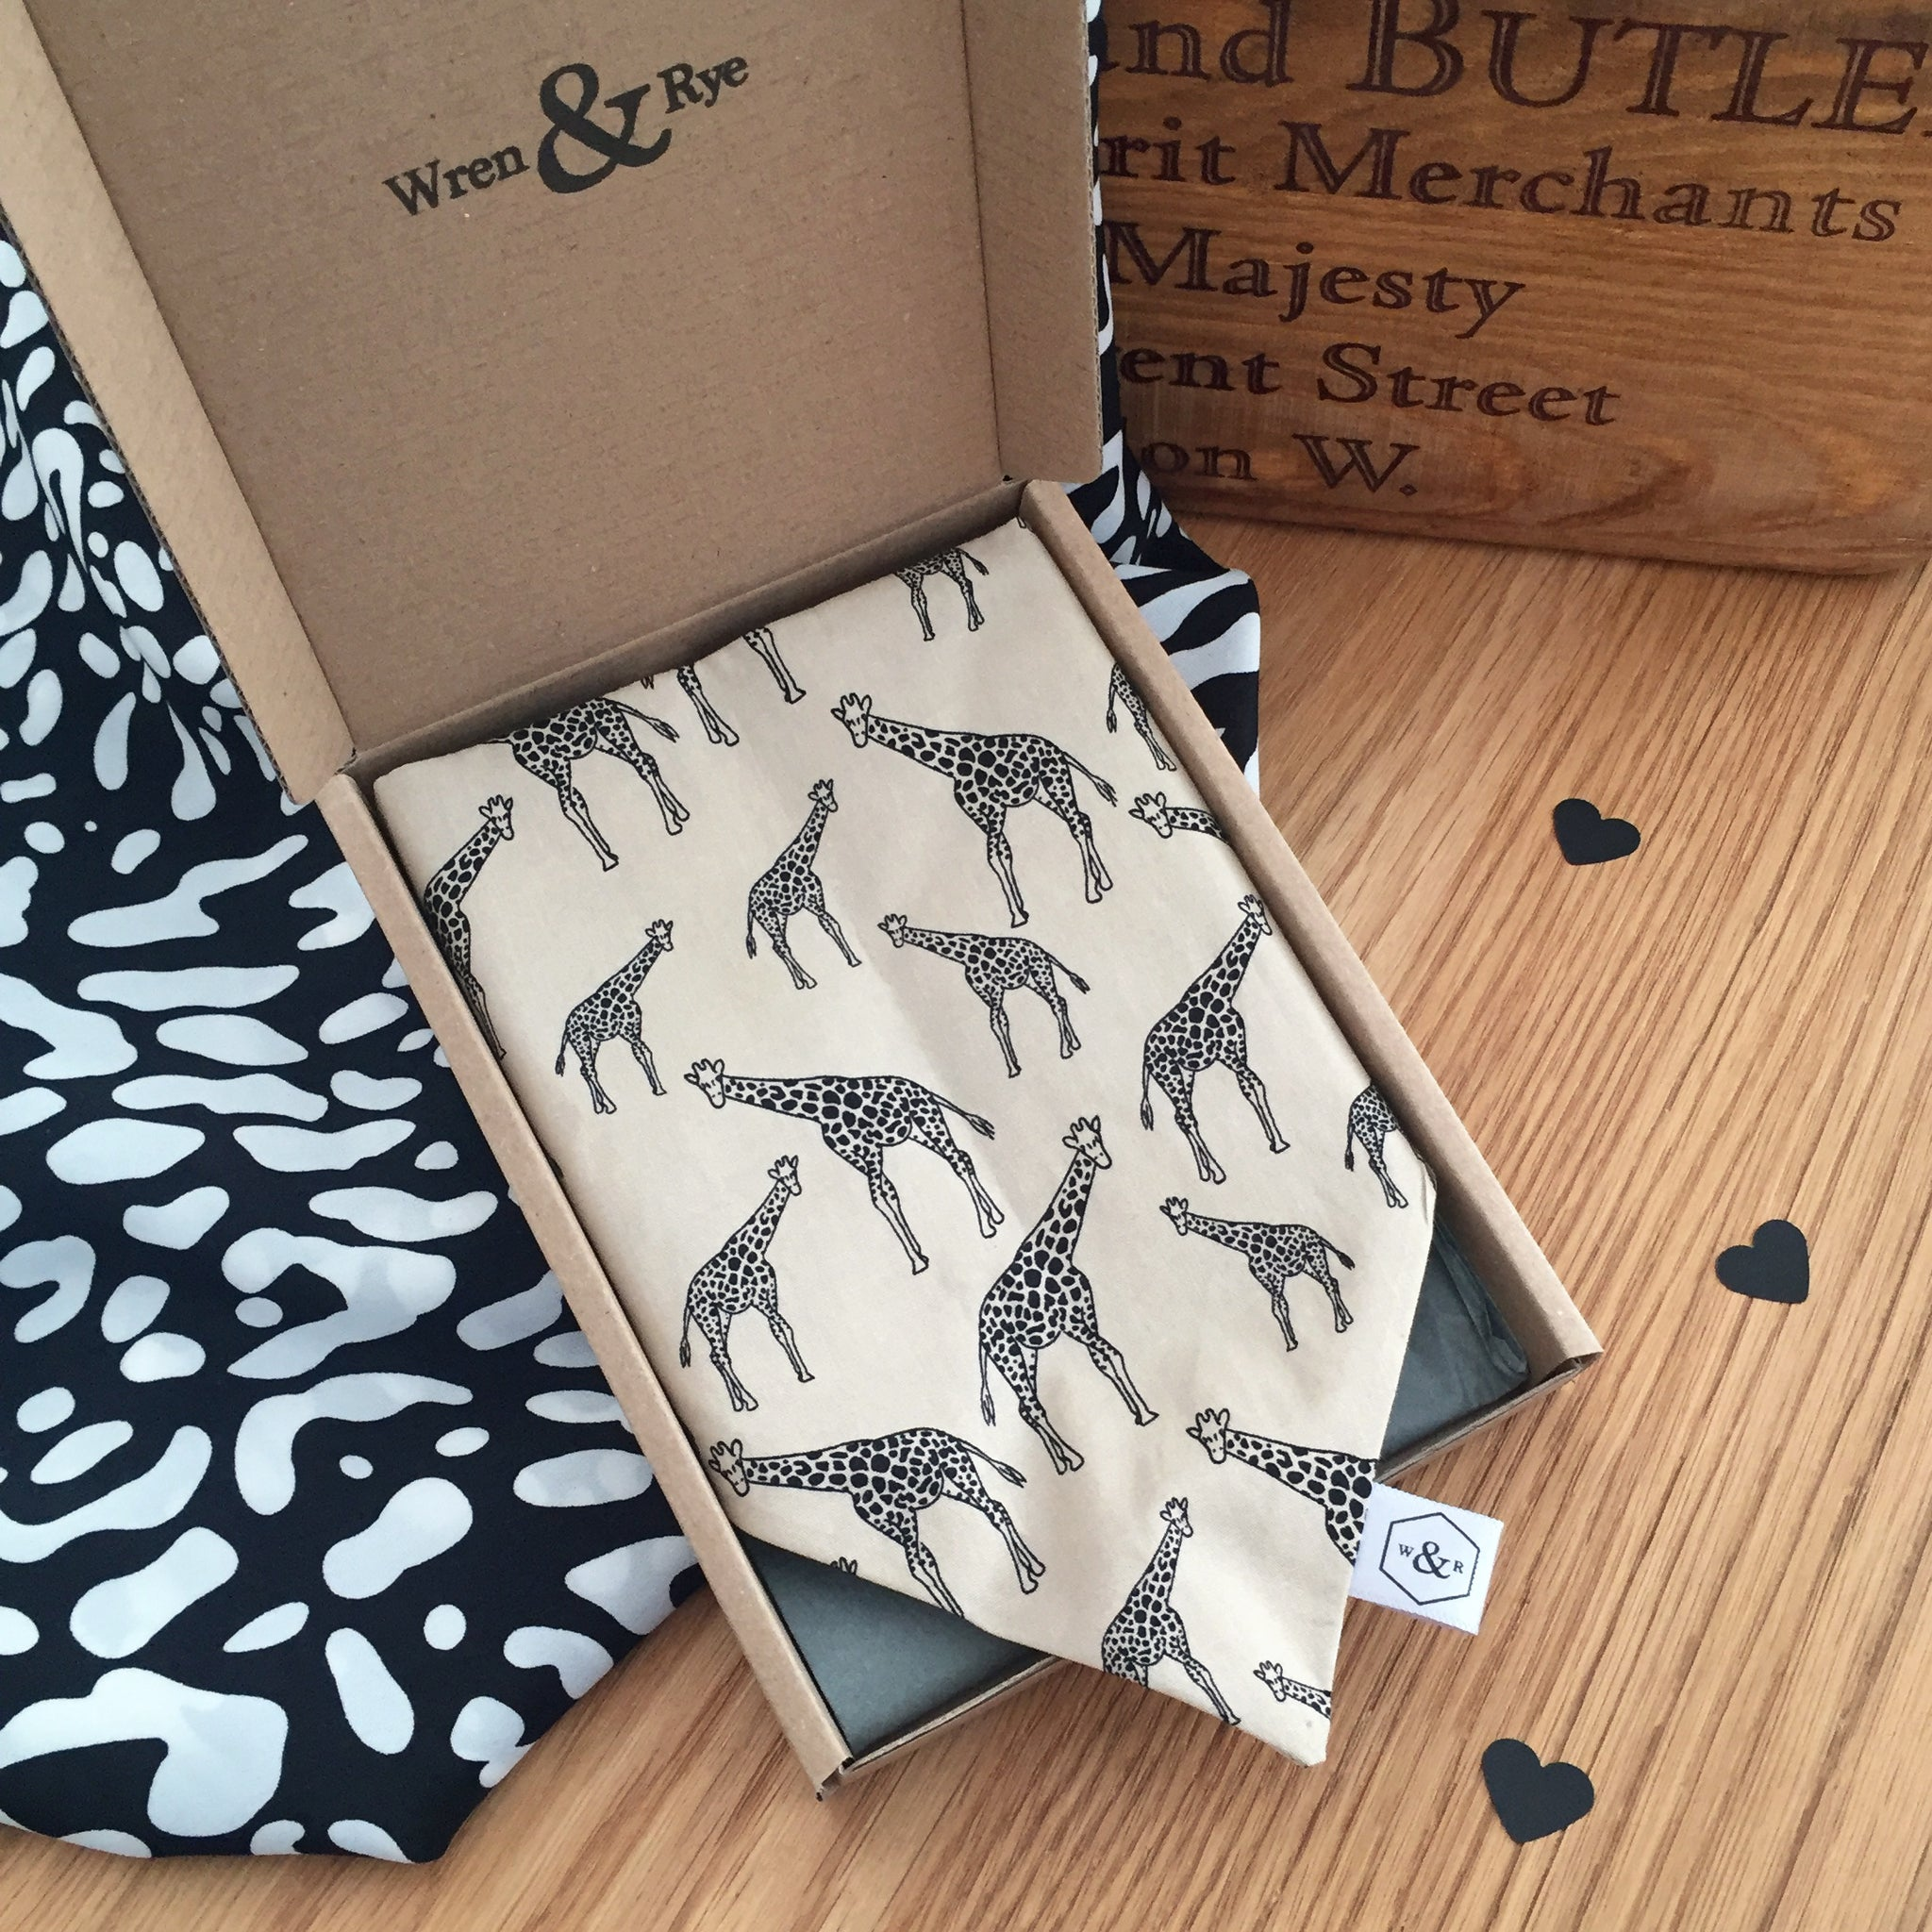 Wren & Rye - Woofing Wild Bandana Packaged